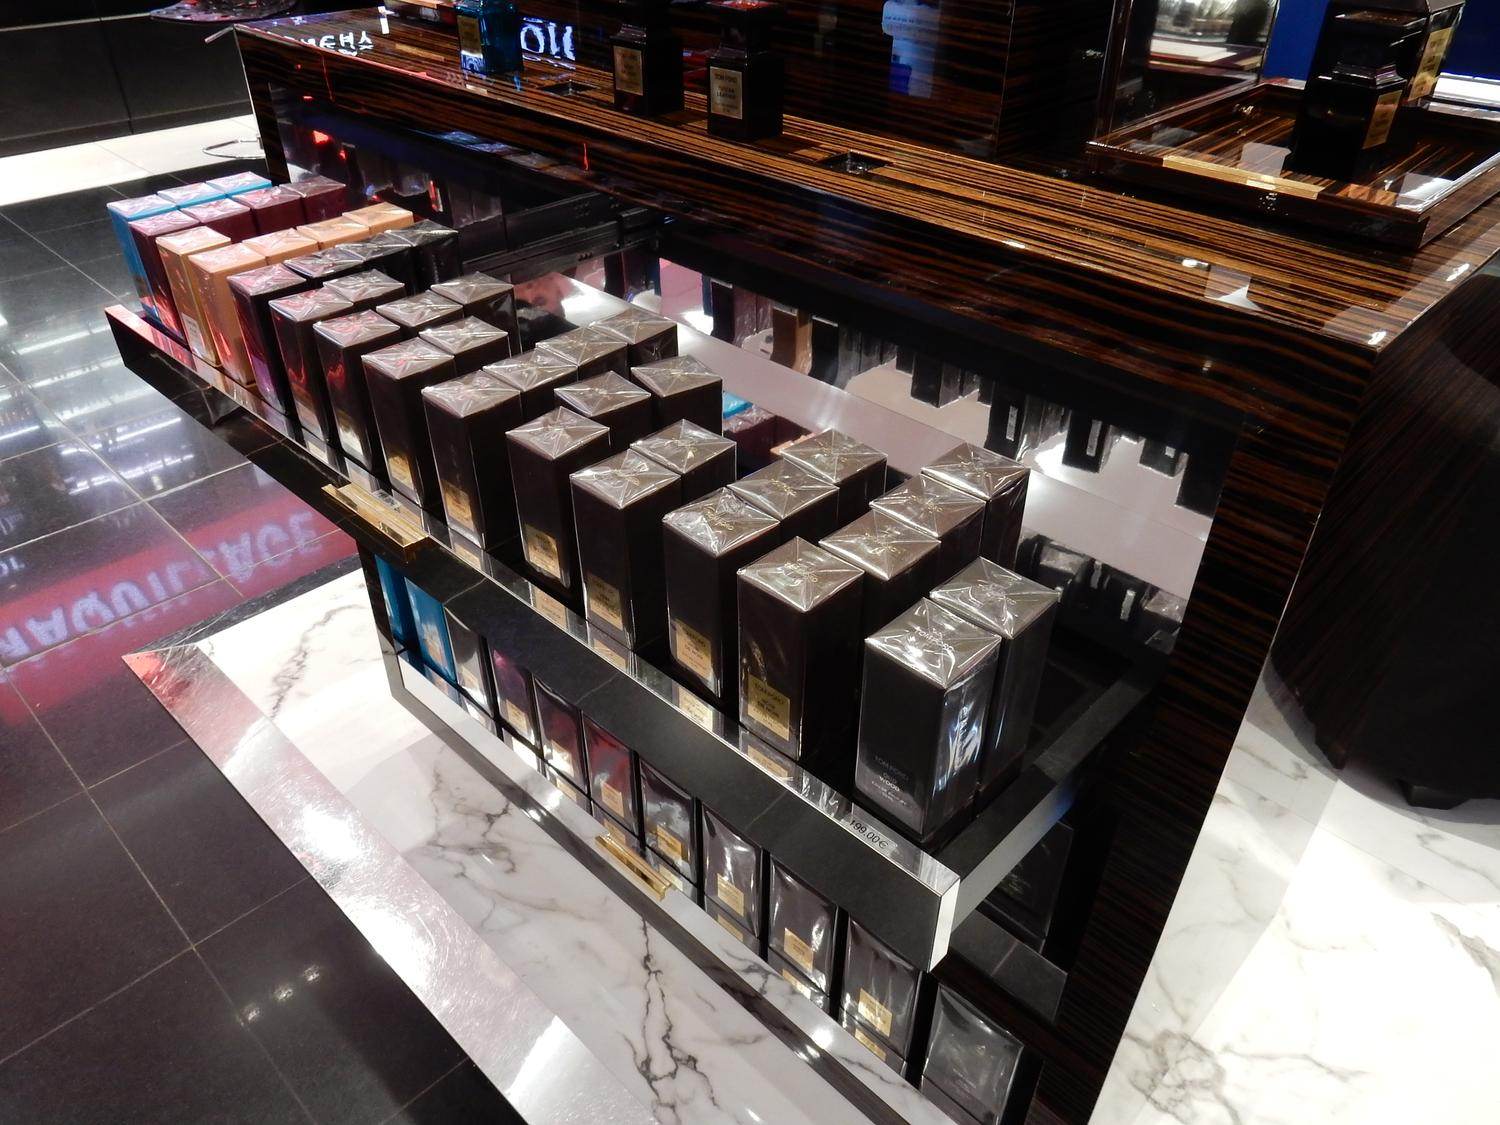 plv temporaire parfums tom ford